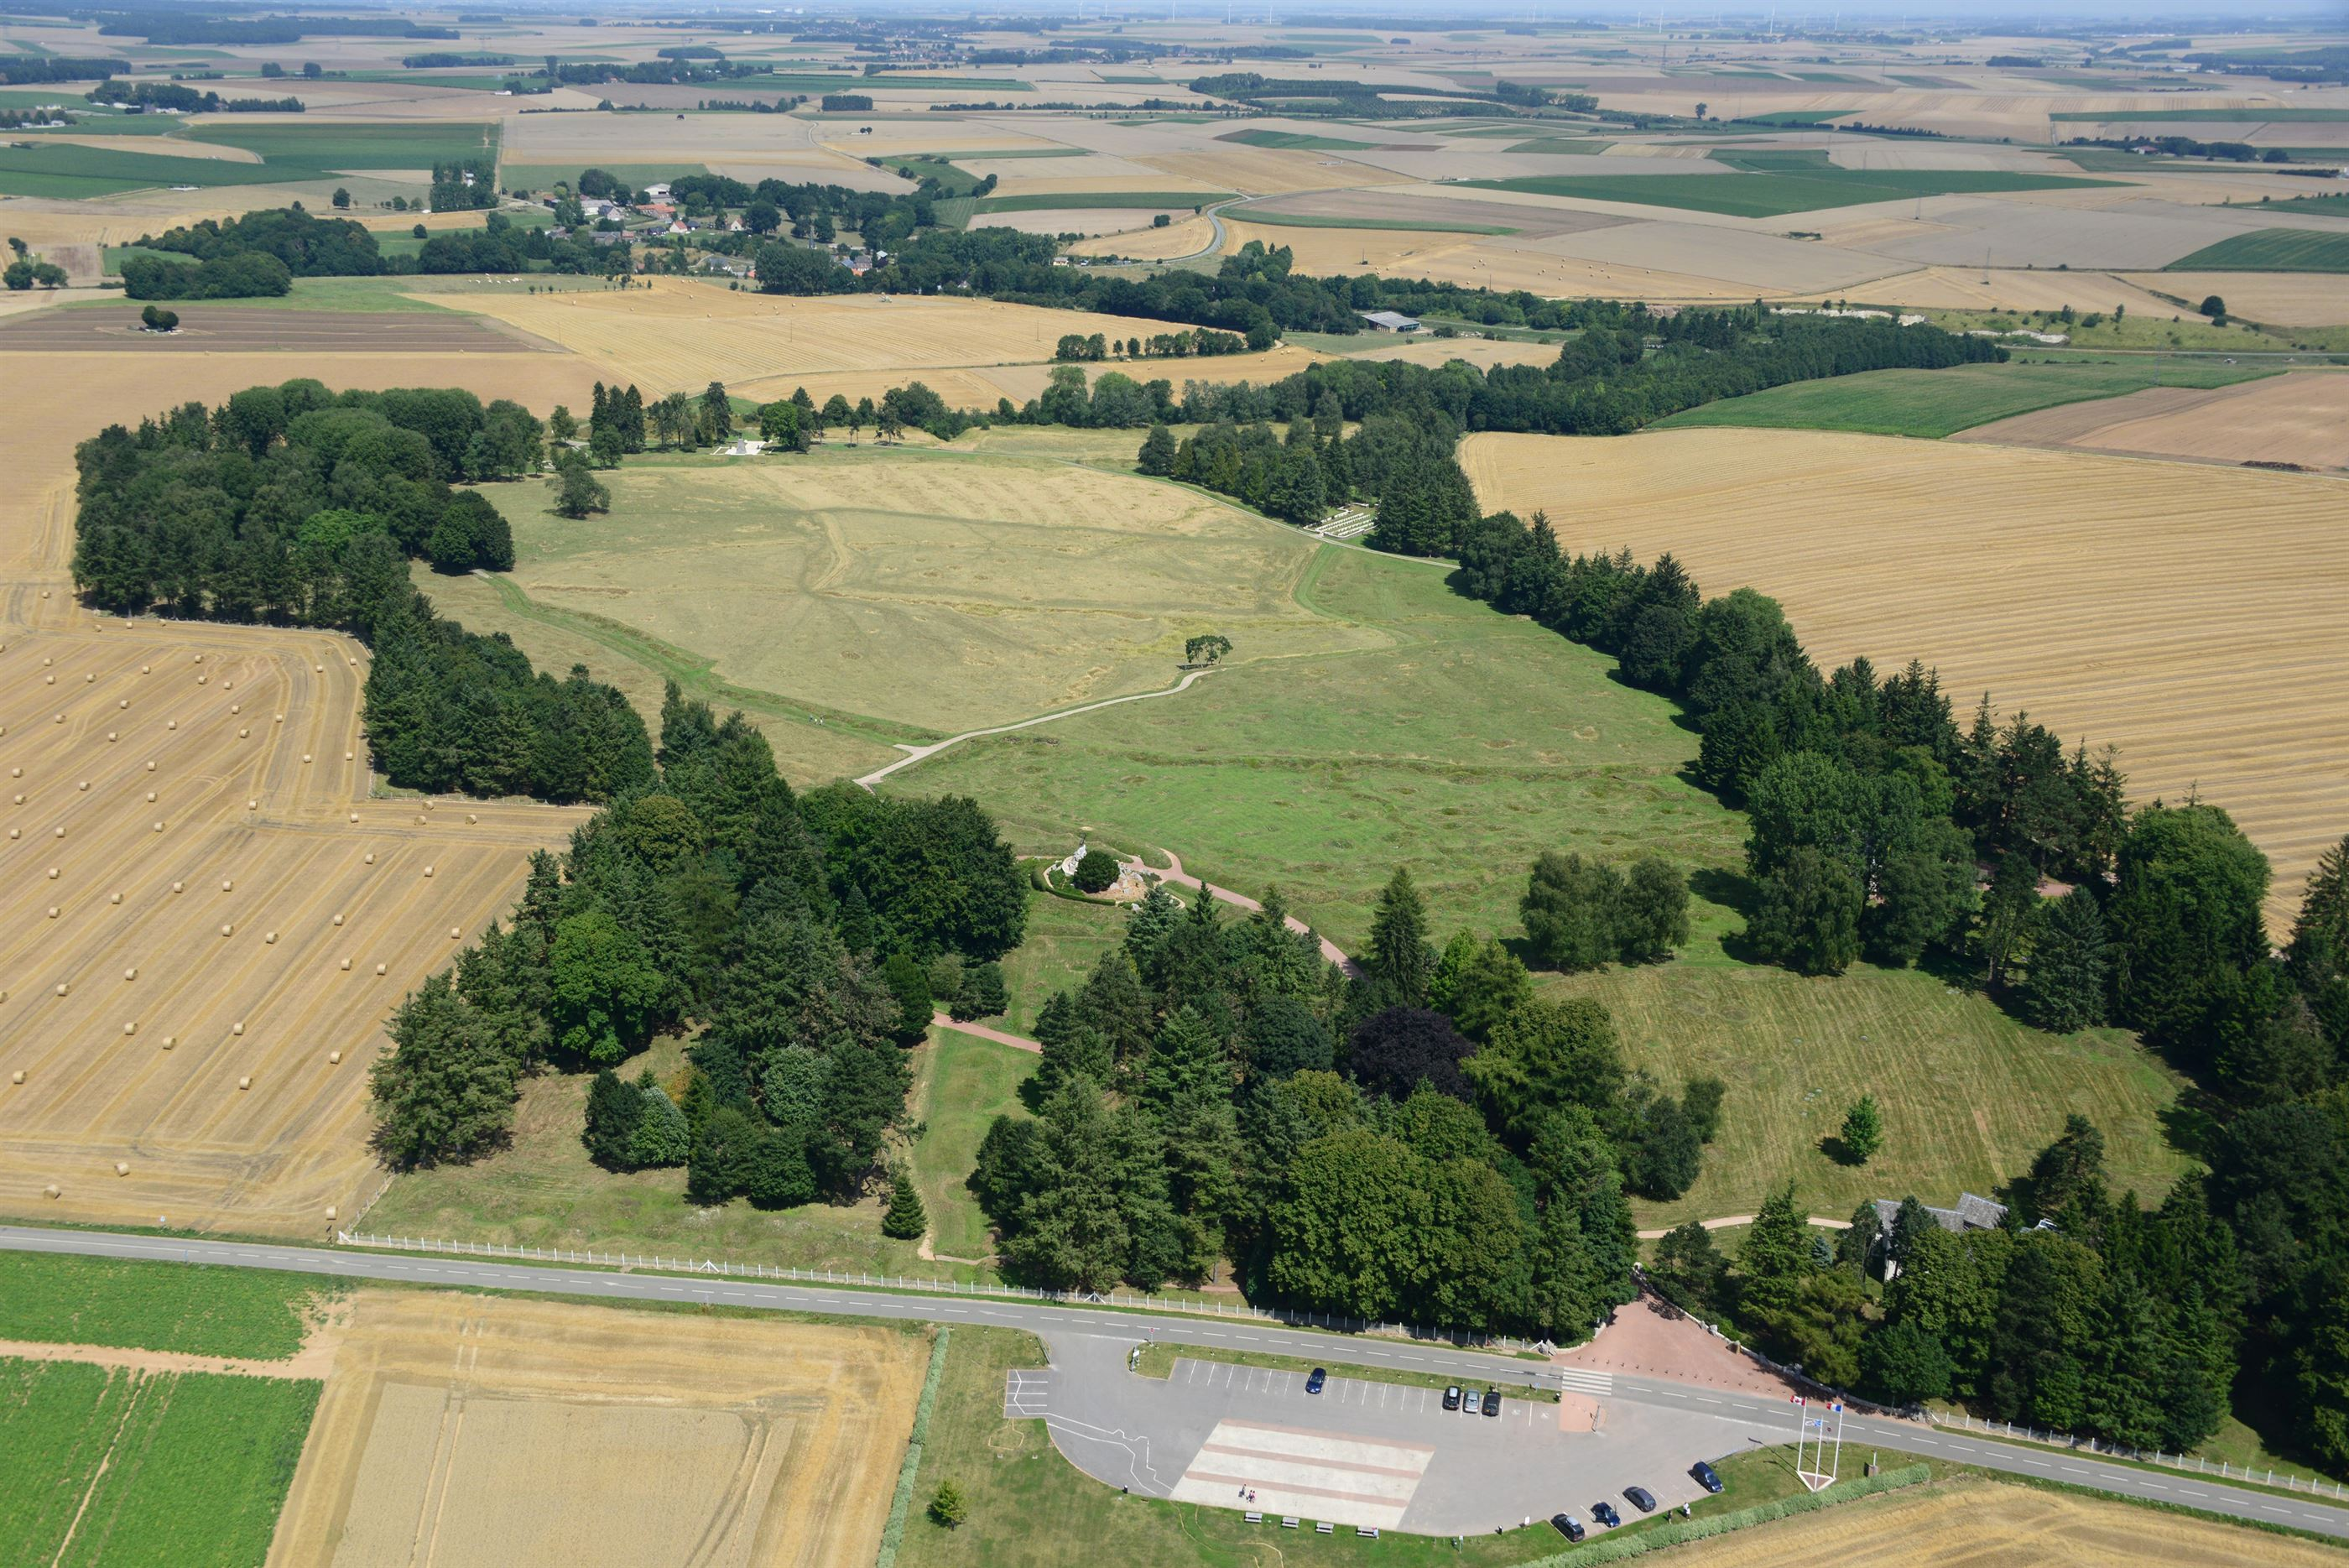 Aerial view of 30 hectares the Beaumont-Hamel Newfoundland Memorial